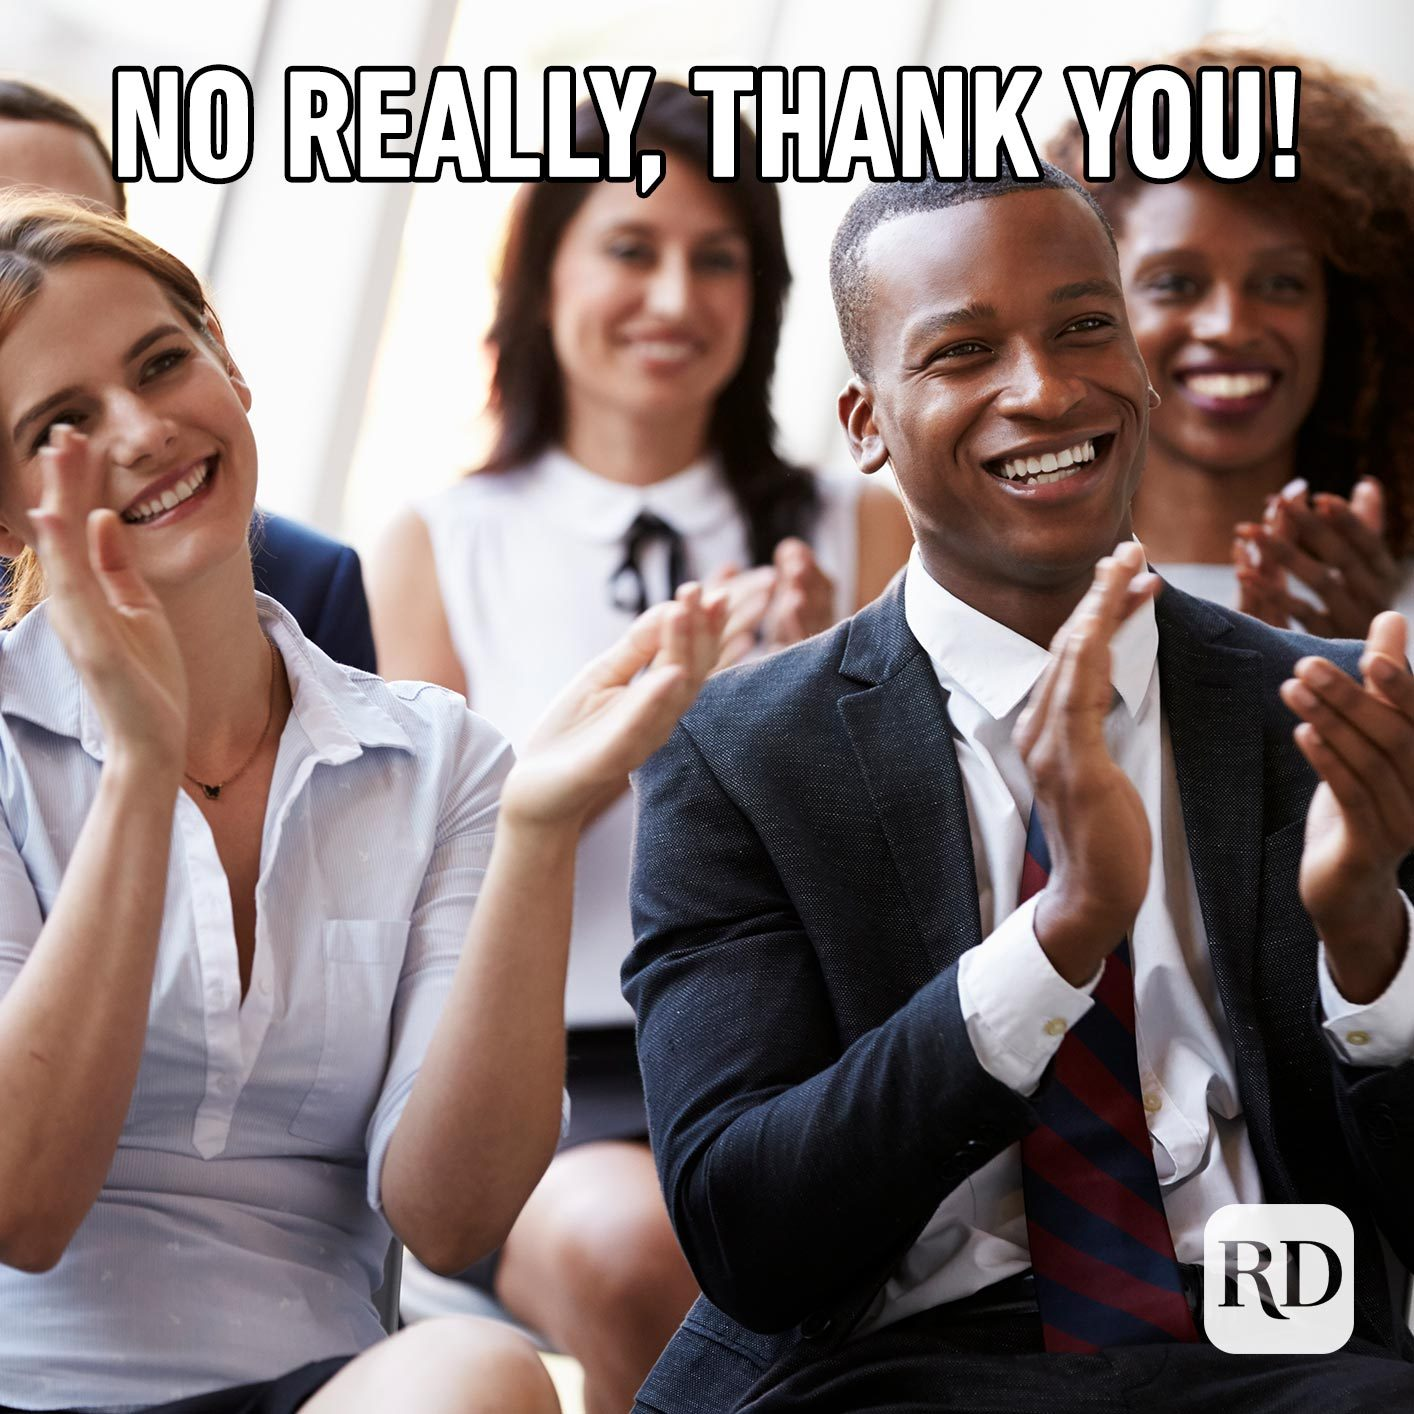 Group of coworkers clapping. Meme text: No really, thank you!